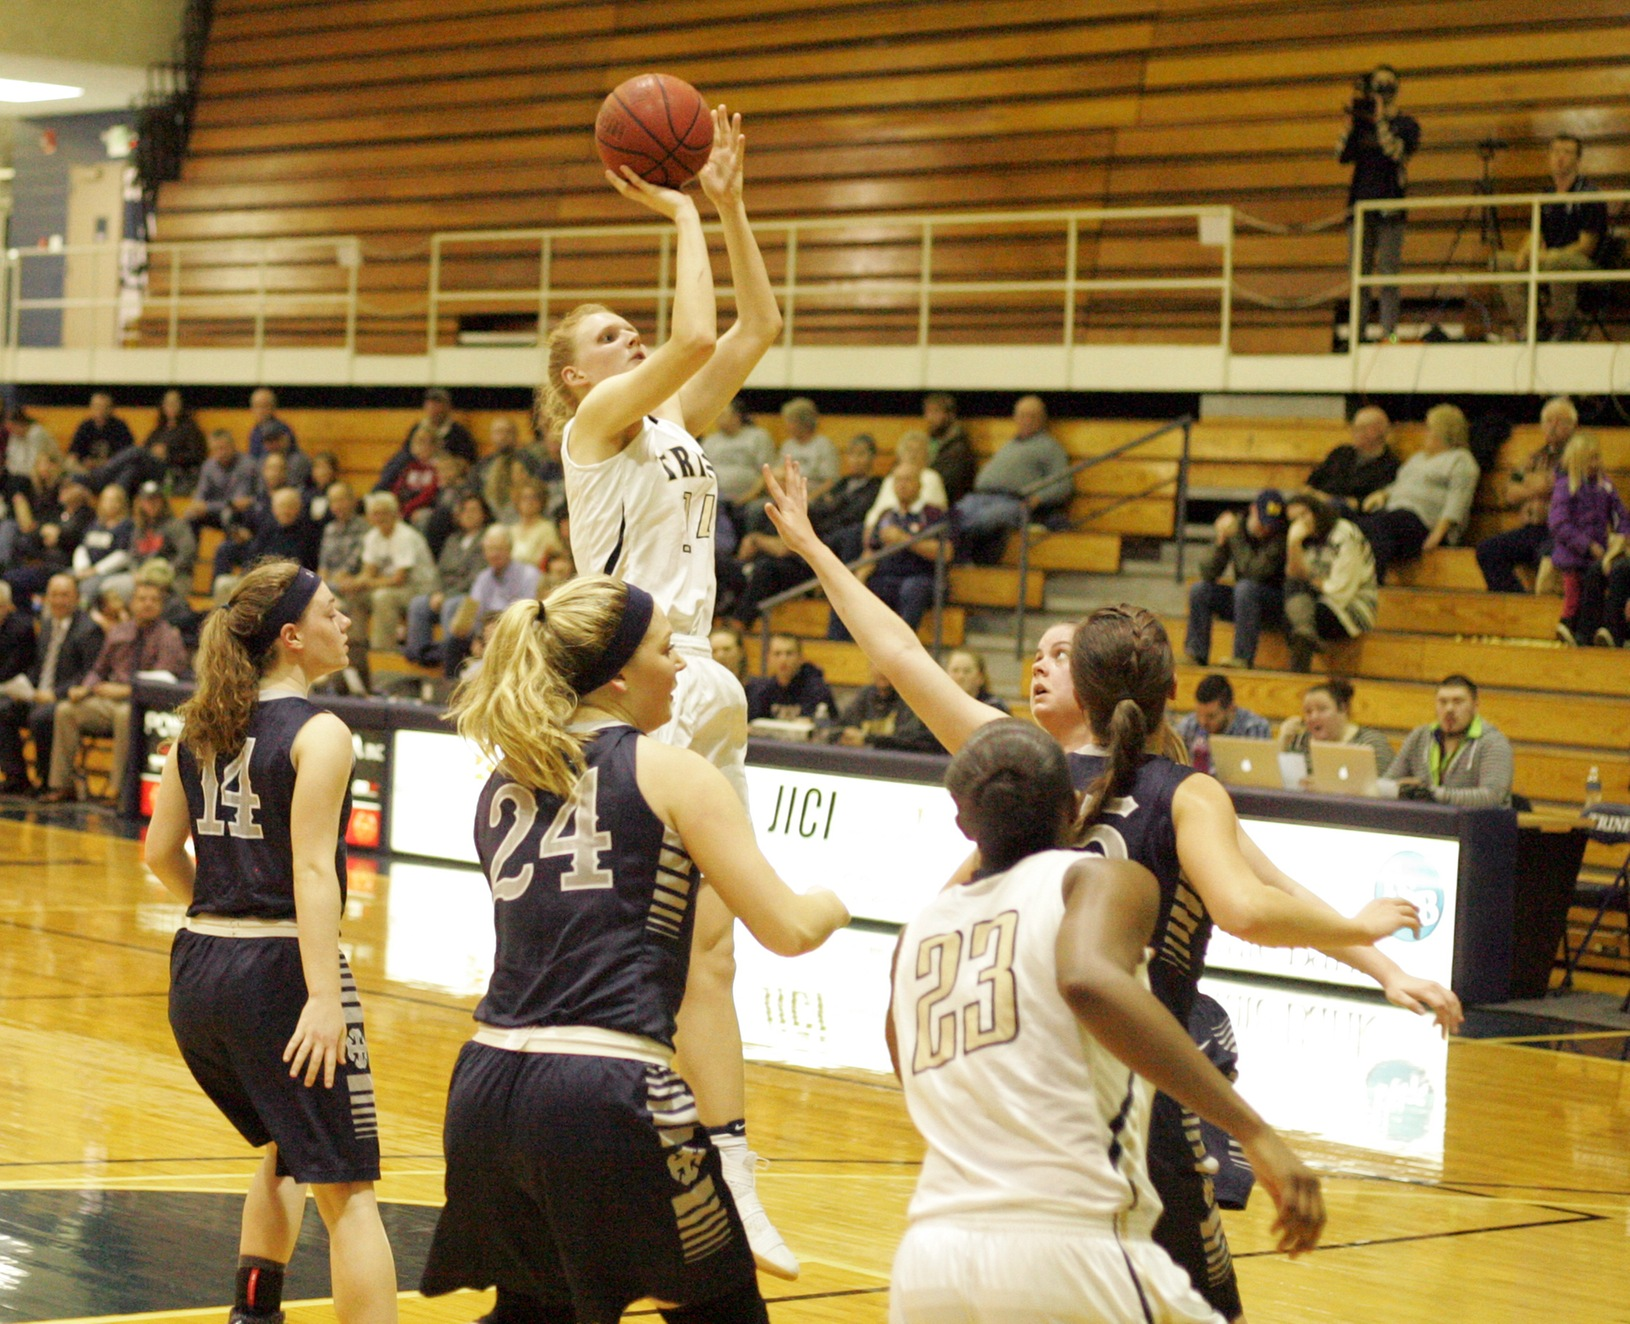 Haley Martin Scores Double-Double in Win Against UW-Stout